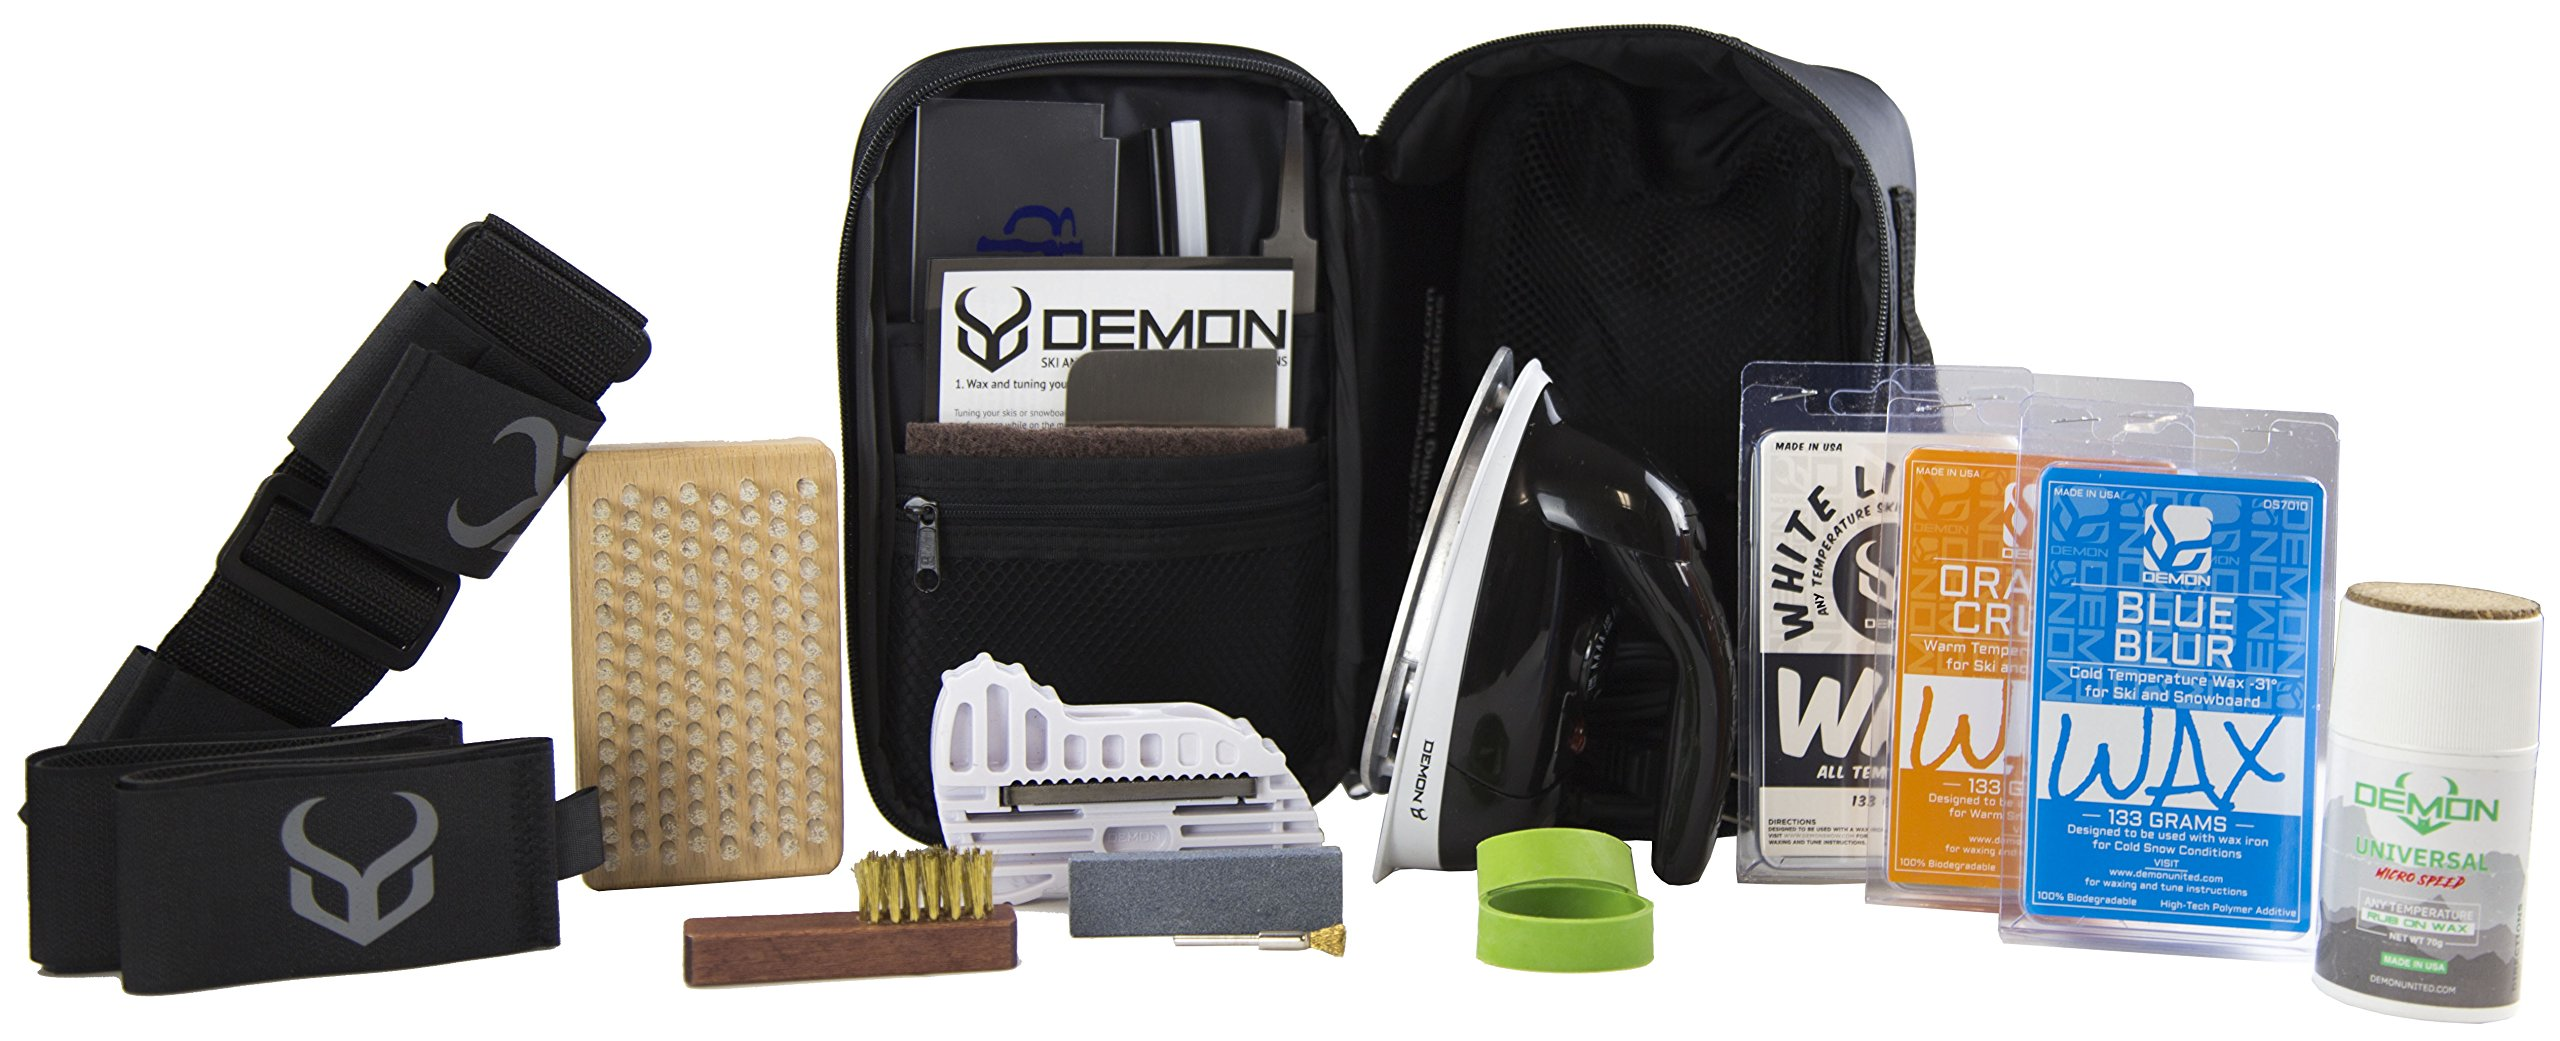 Demon Victory 22 Ski Tune Kit with Iron – Vacation Edition- Includes Ski Straps, Ski Shoulder Carry Harness & Demon Micro Speed Rub On Wax